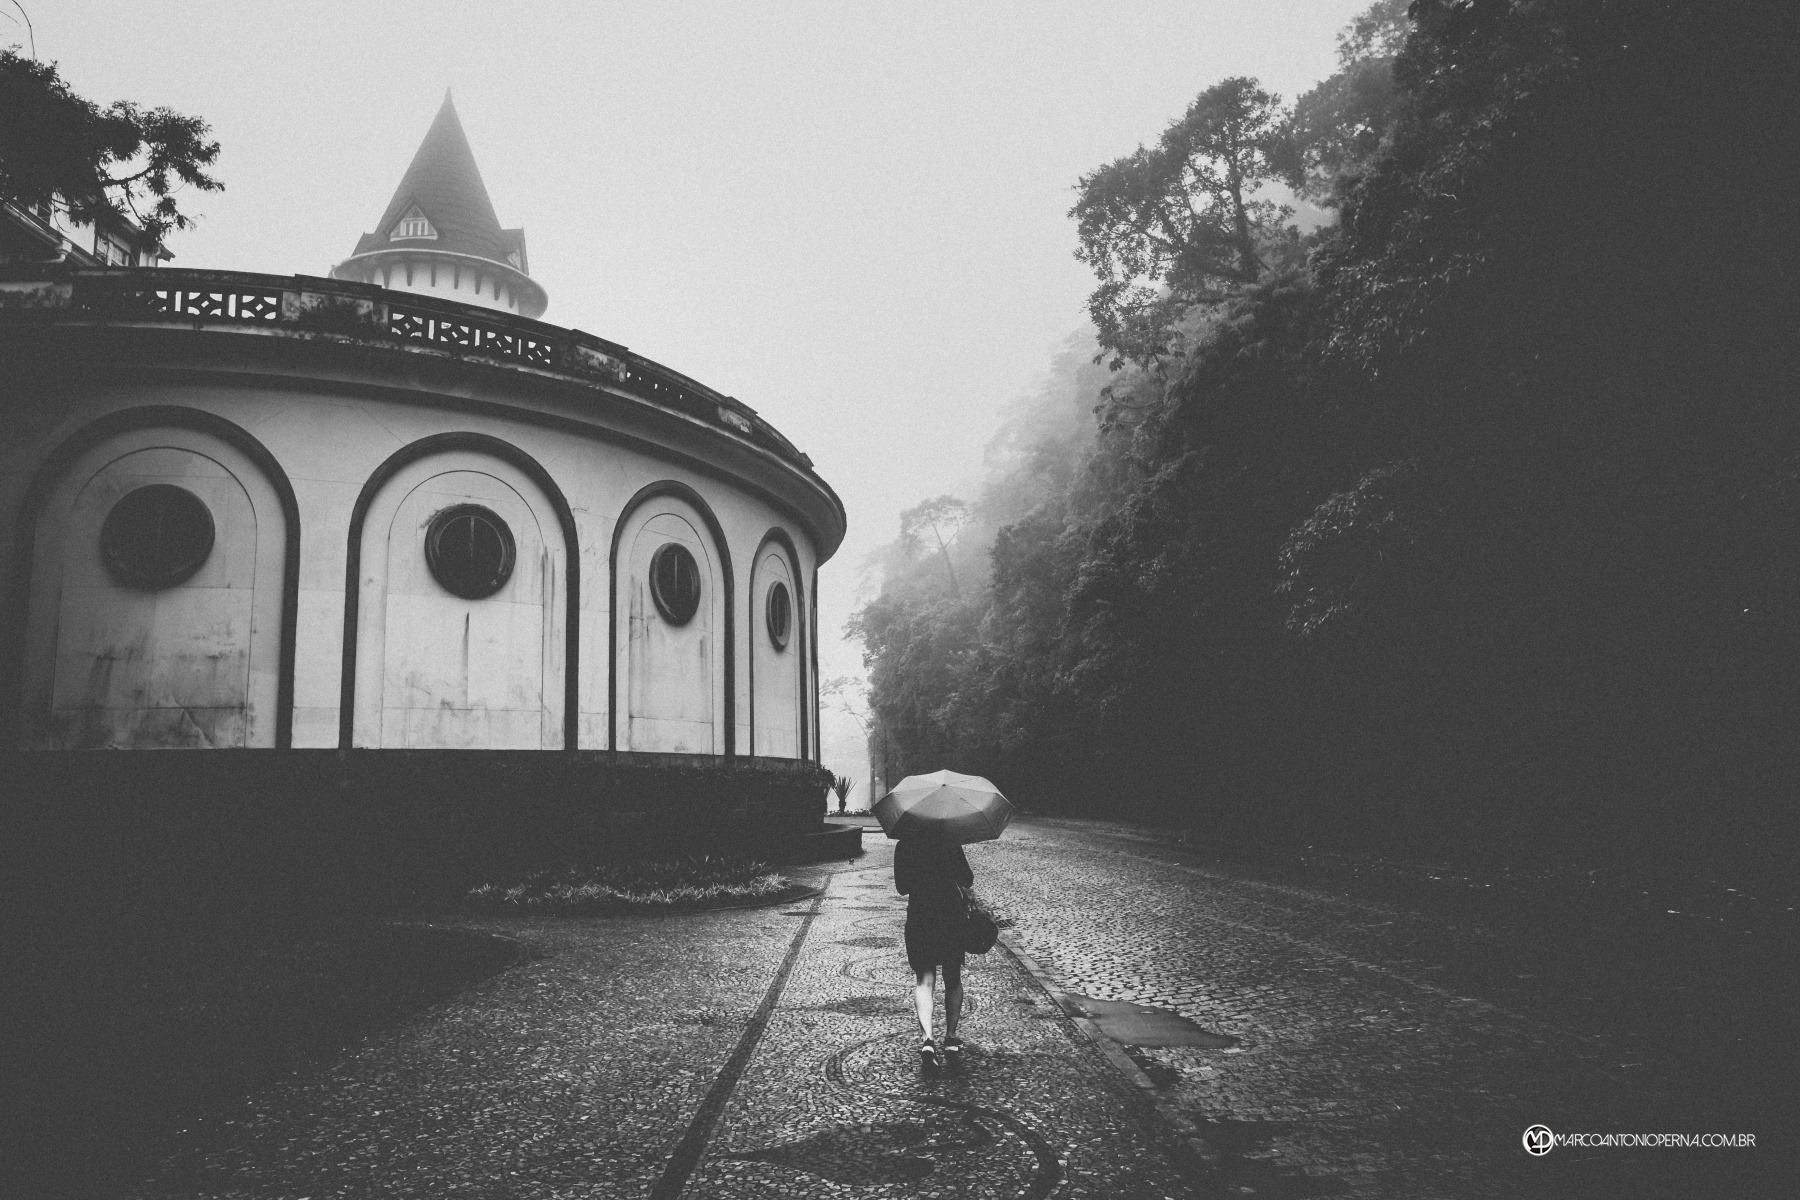 Rainy day in Petrópolis -